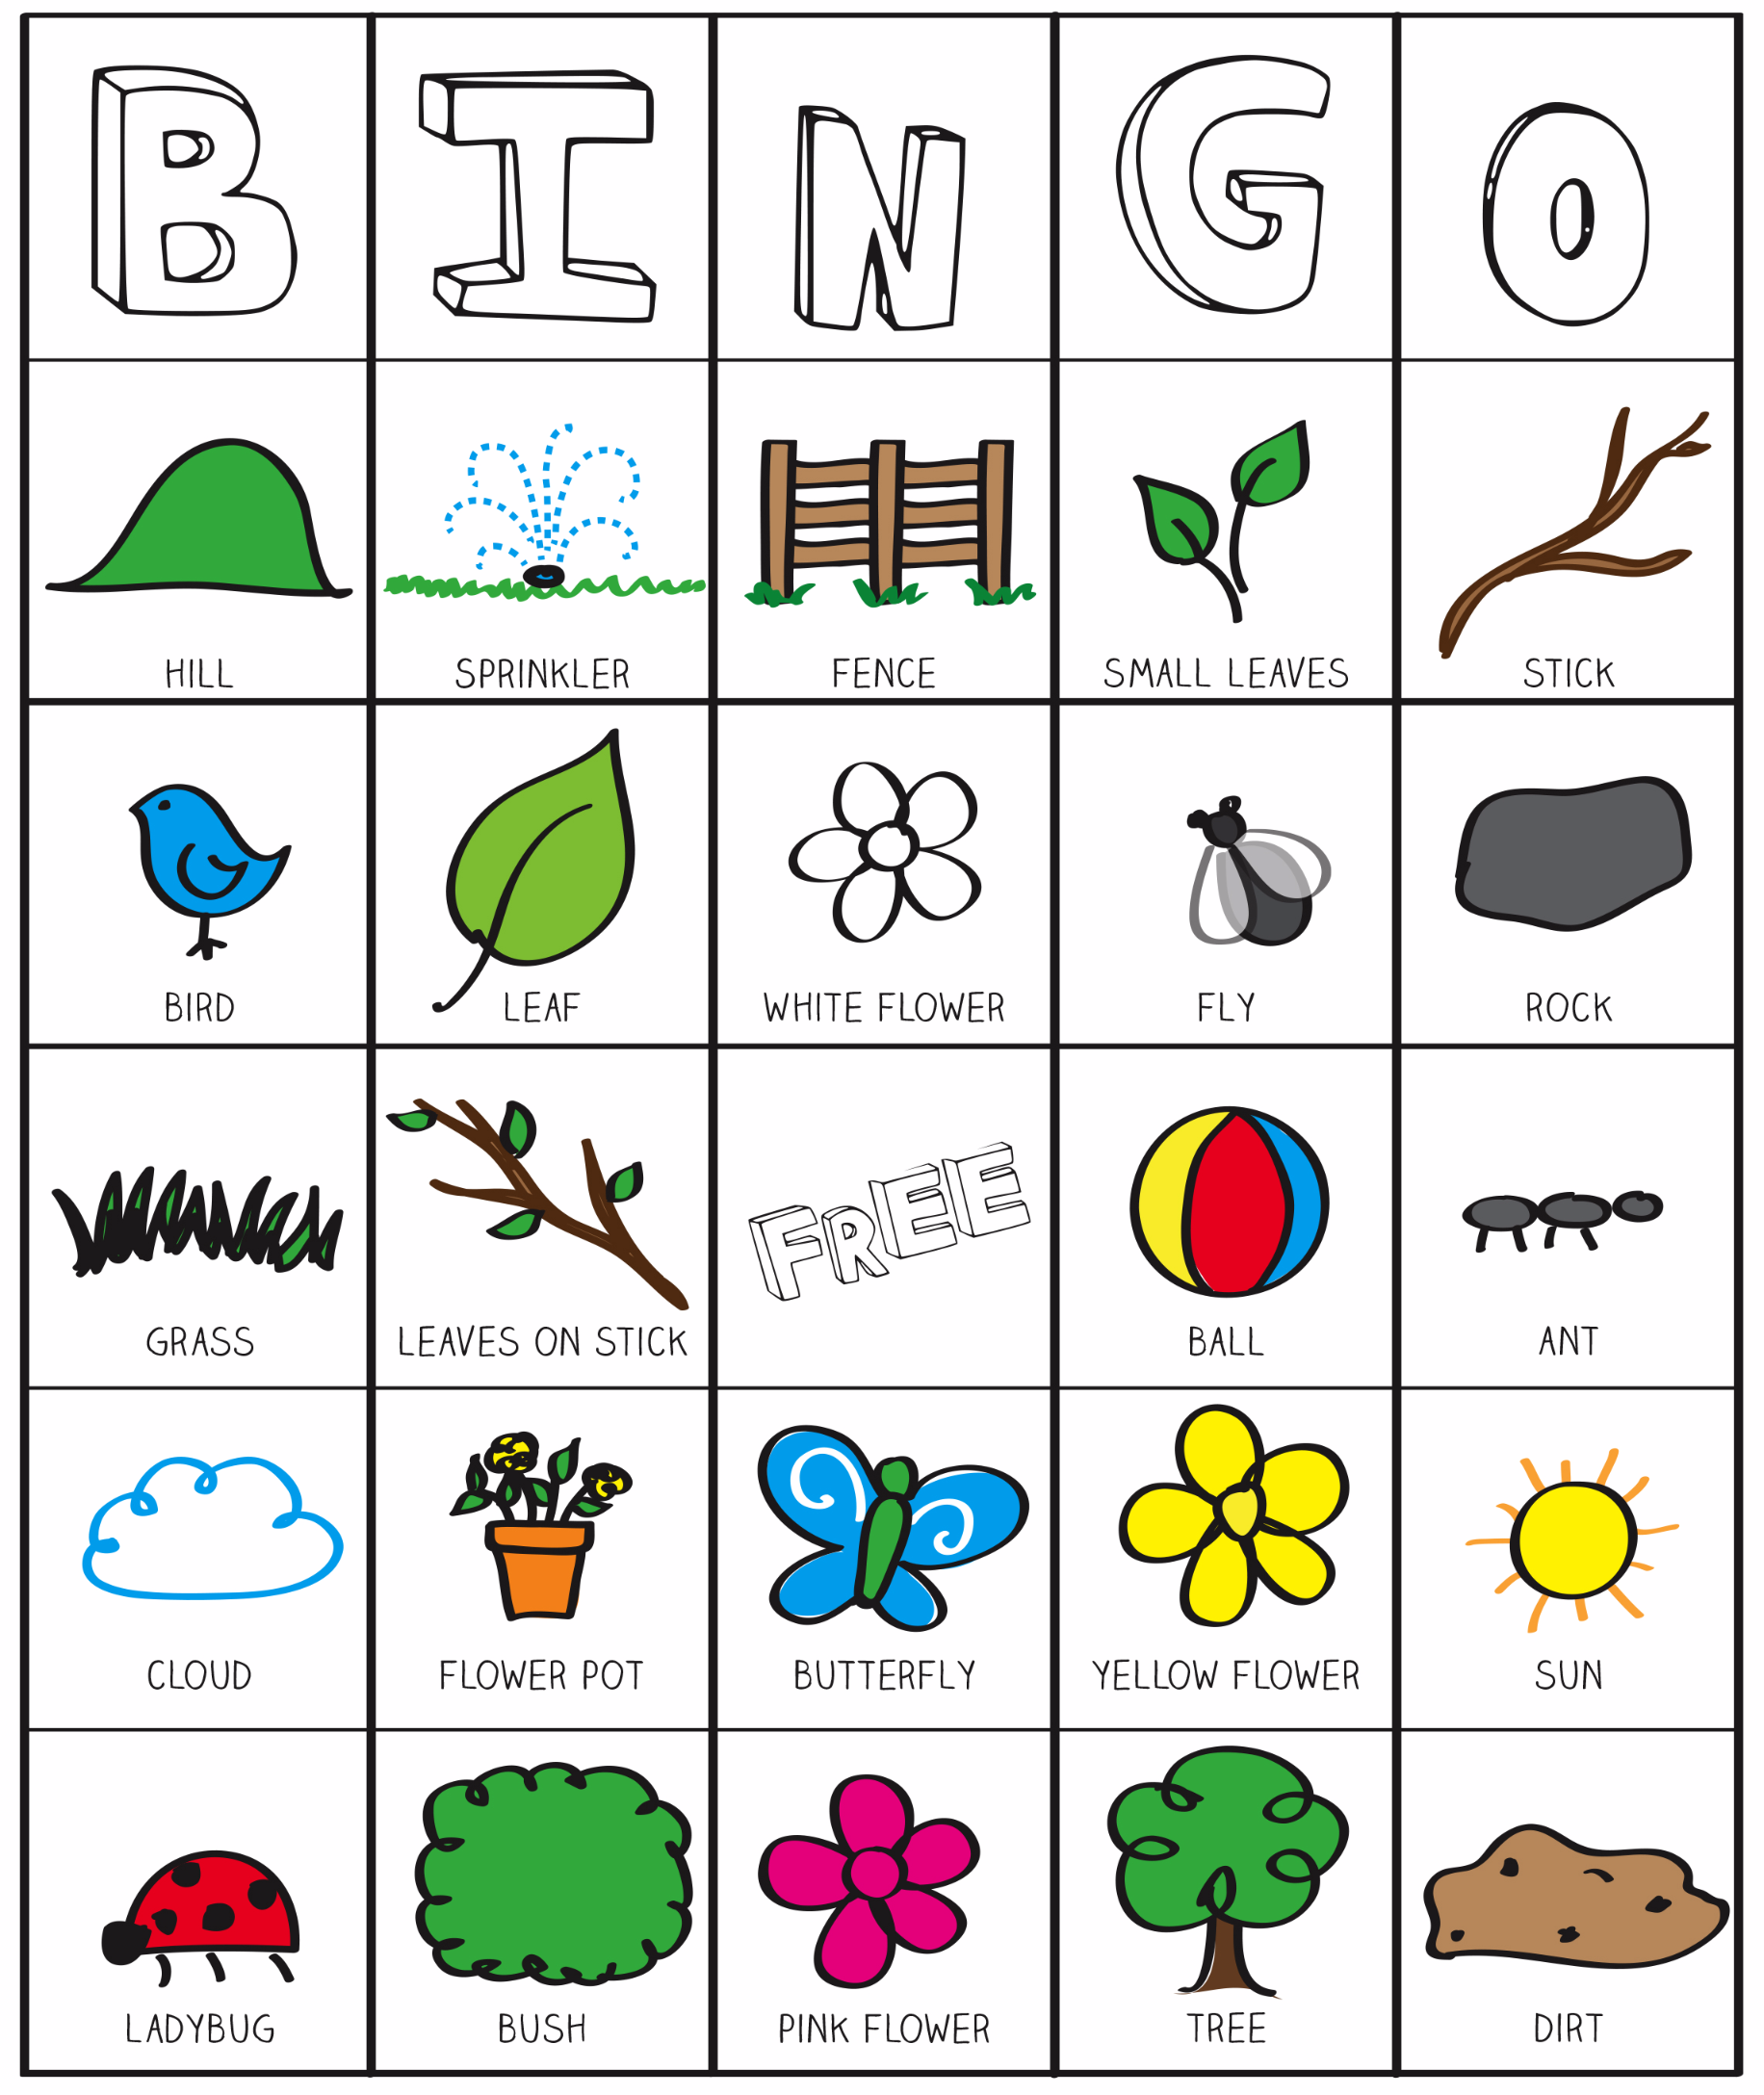 Fun Class Worksheets : Outside bingo printable inspired by the garden classroom